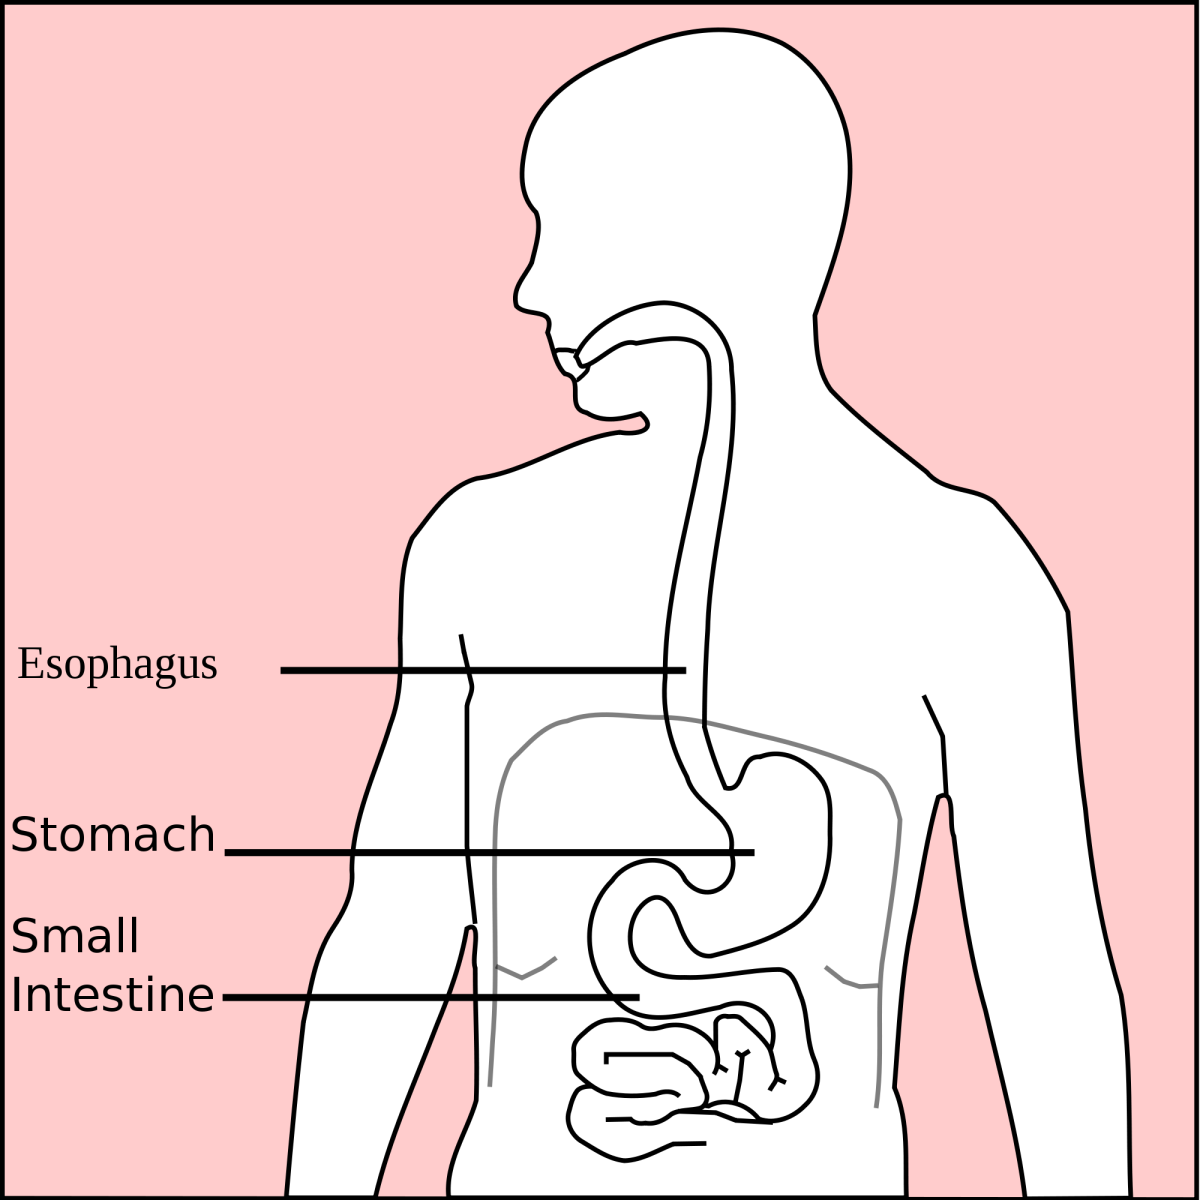 Identifying Signs and Symptoms of Stomach Ulcers